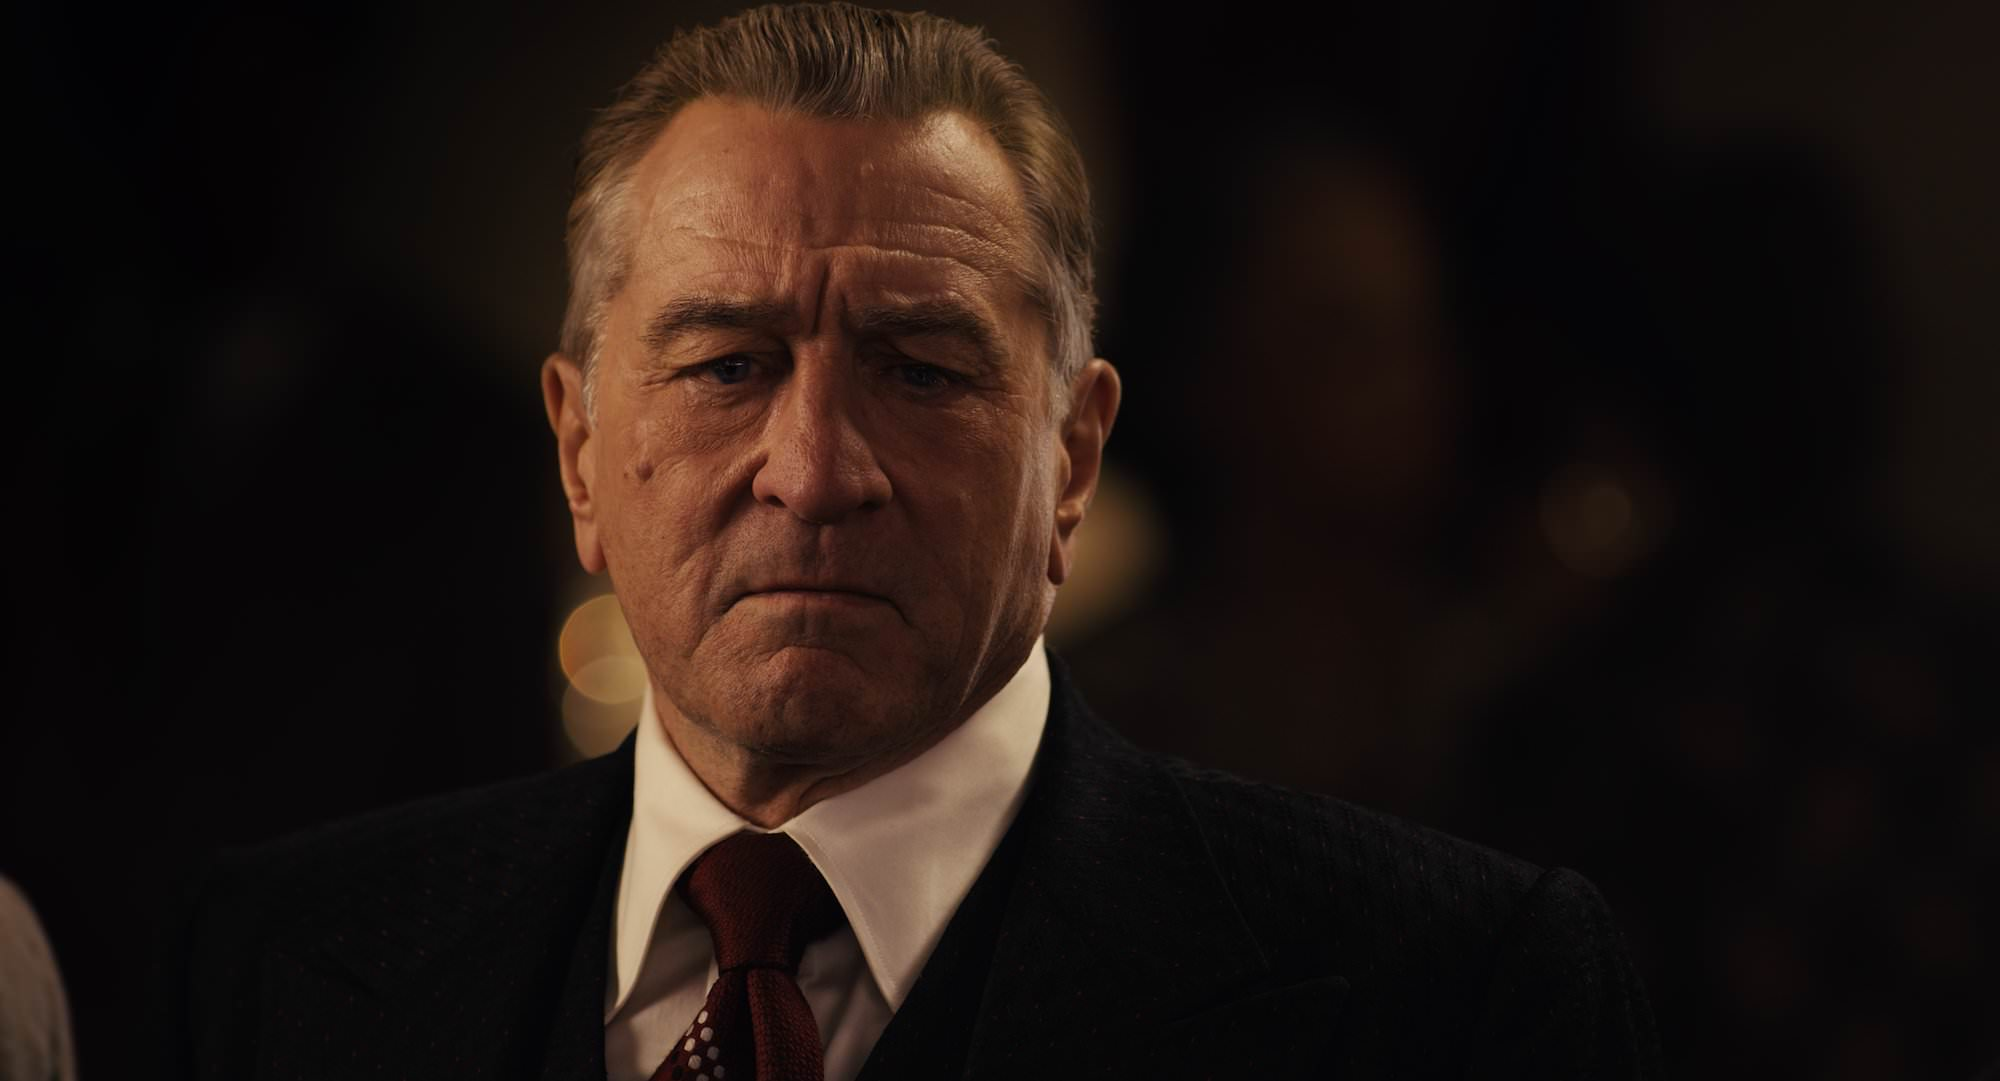 فیلم The Irishman رابرت دنیرو